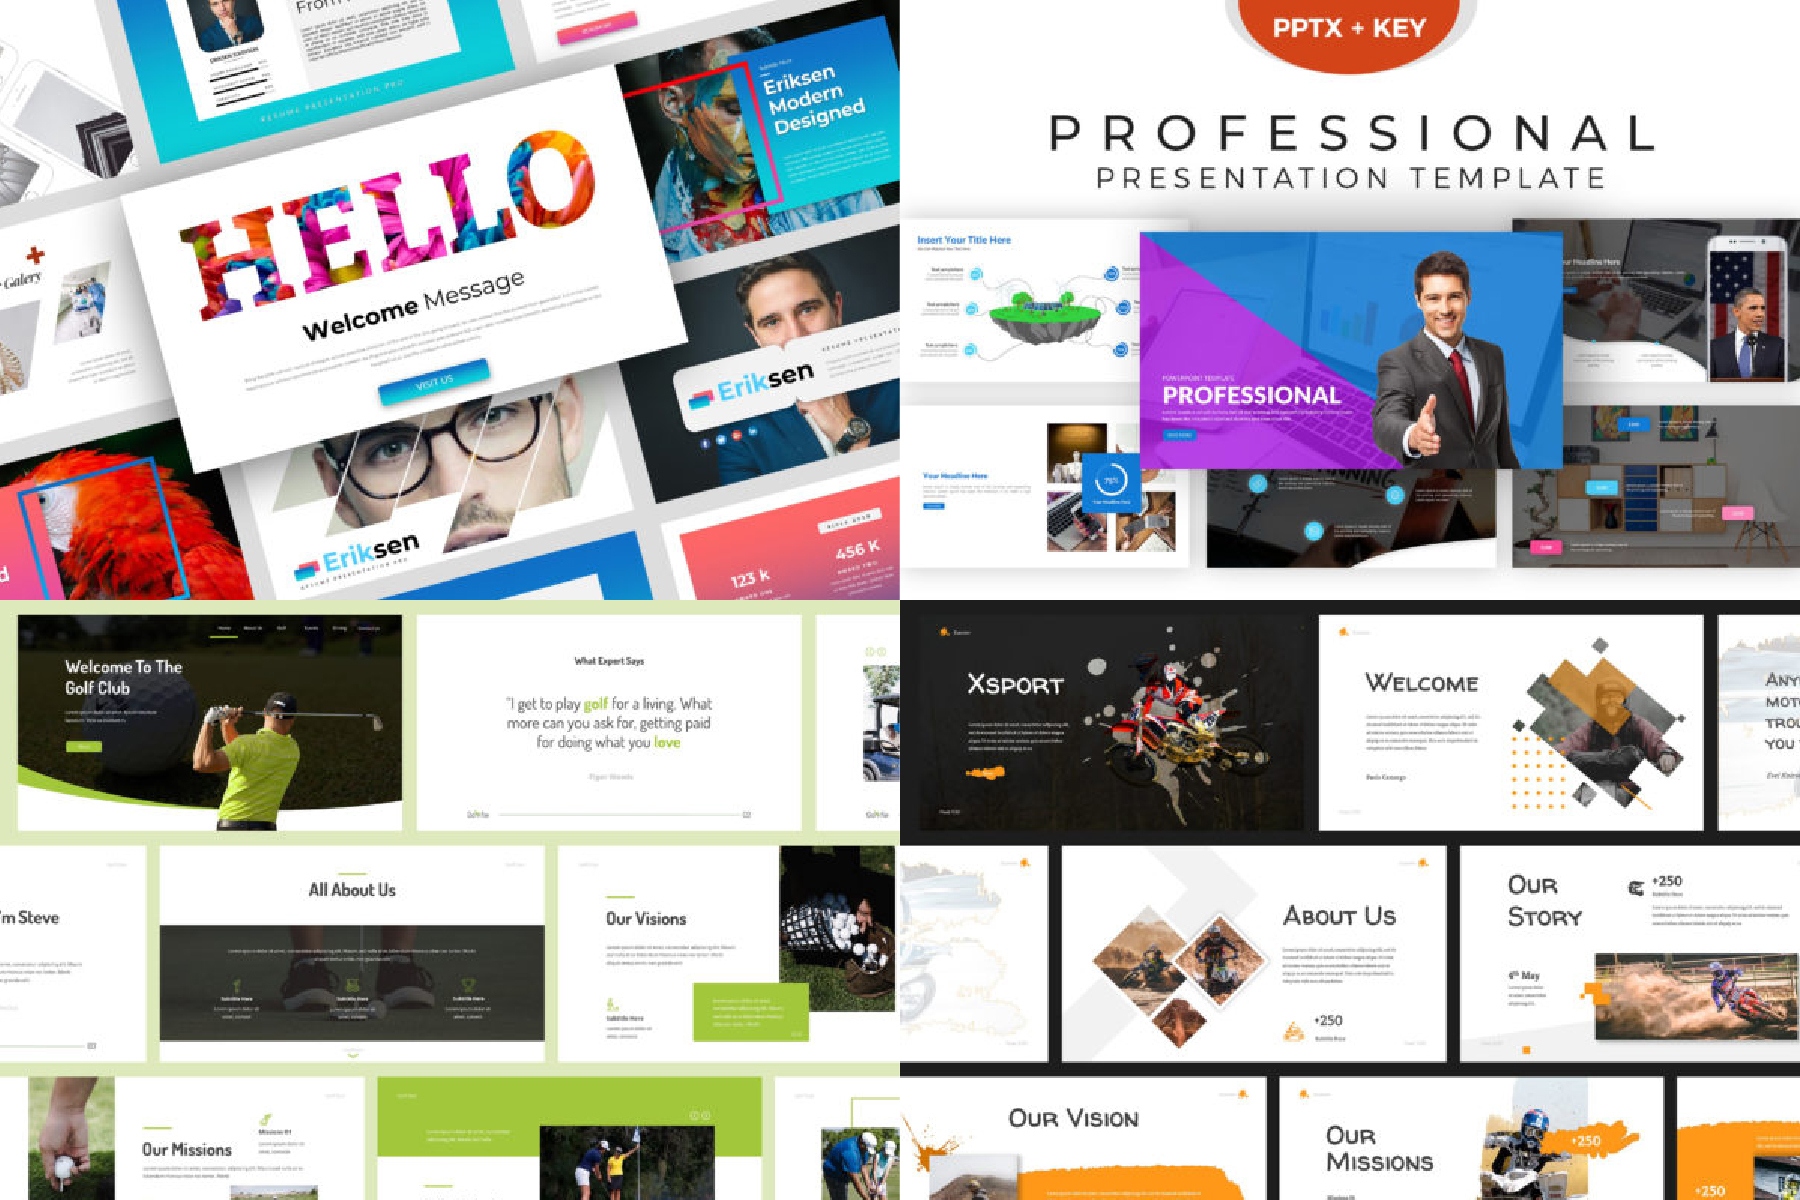 64-most-popular-powerpoint-template